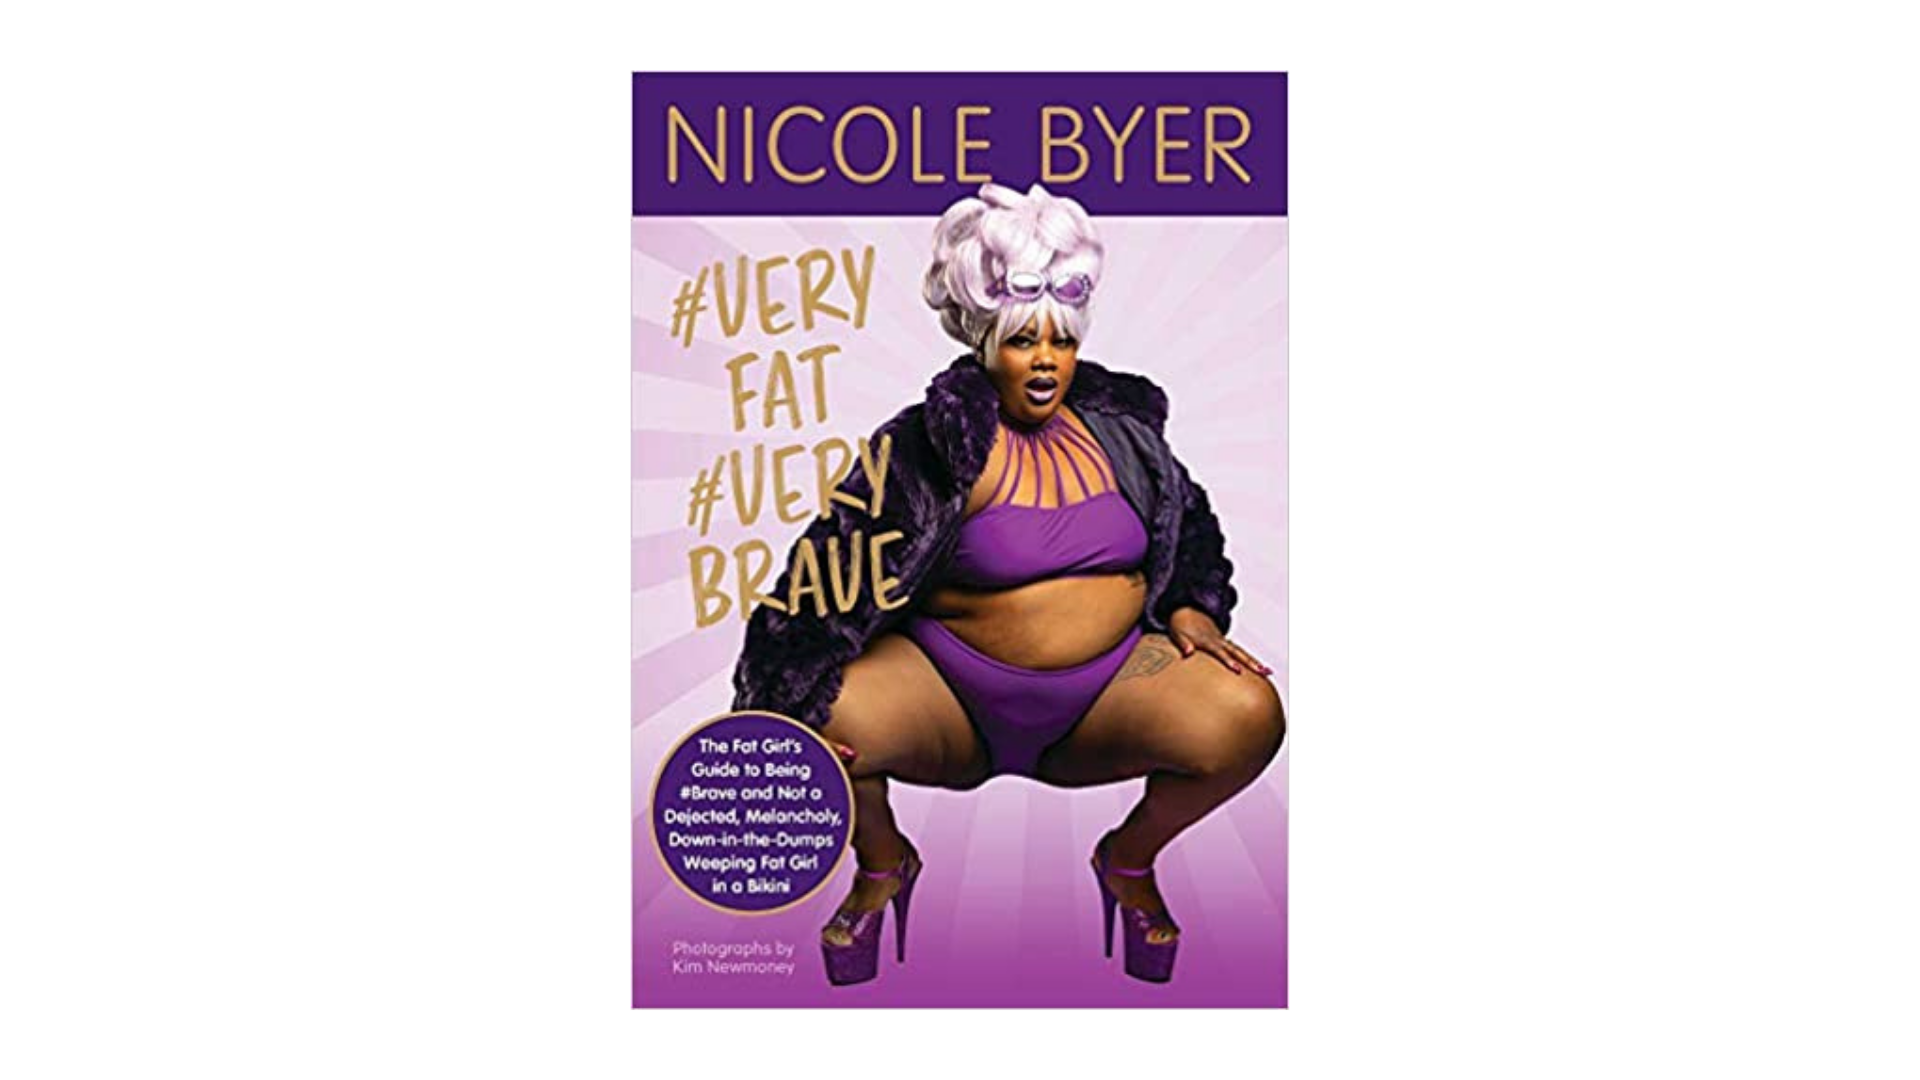 Nicole Byer best books by black authors